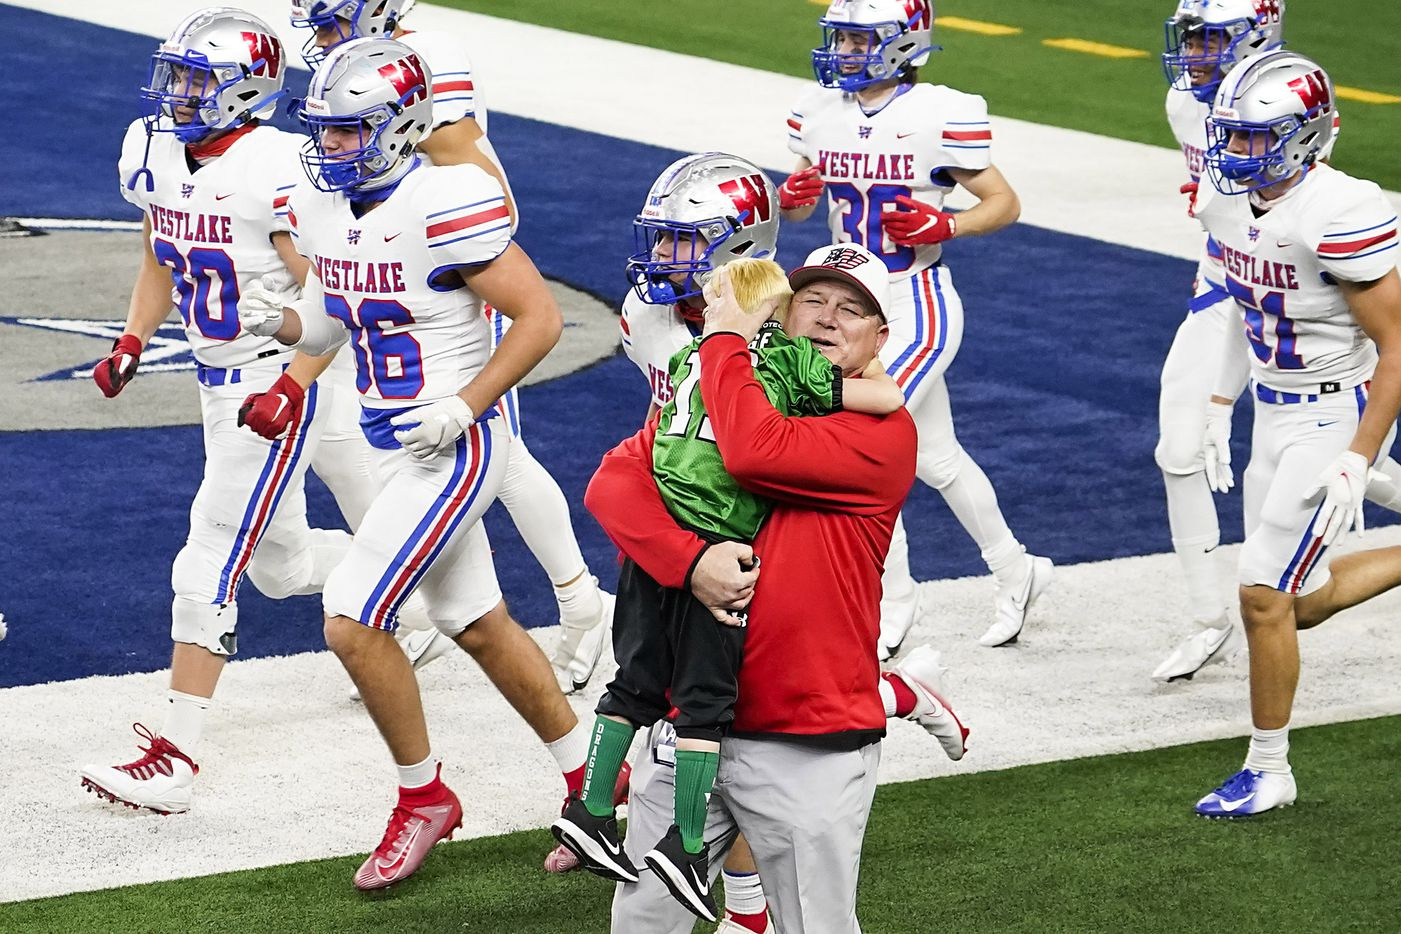 Austin Westlake head coach Todd Dodge hugs his grandson Tate, 5, as his team takes the field to warm warm up before facing his son, Southlake Carroll head coach Riley Dodge, in the Class 6A Division I state football championship game at AT&T Stadium on Saturday, Jan. 16, 2021, in Arlington, Texas.